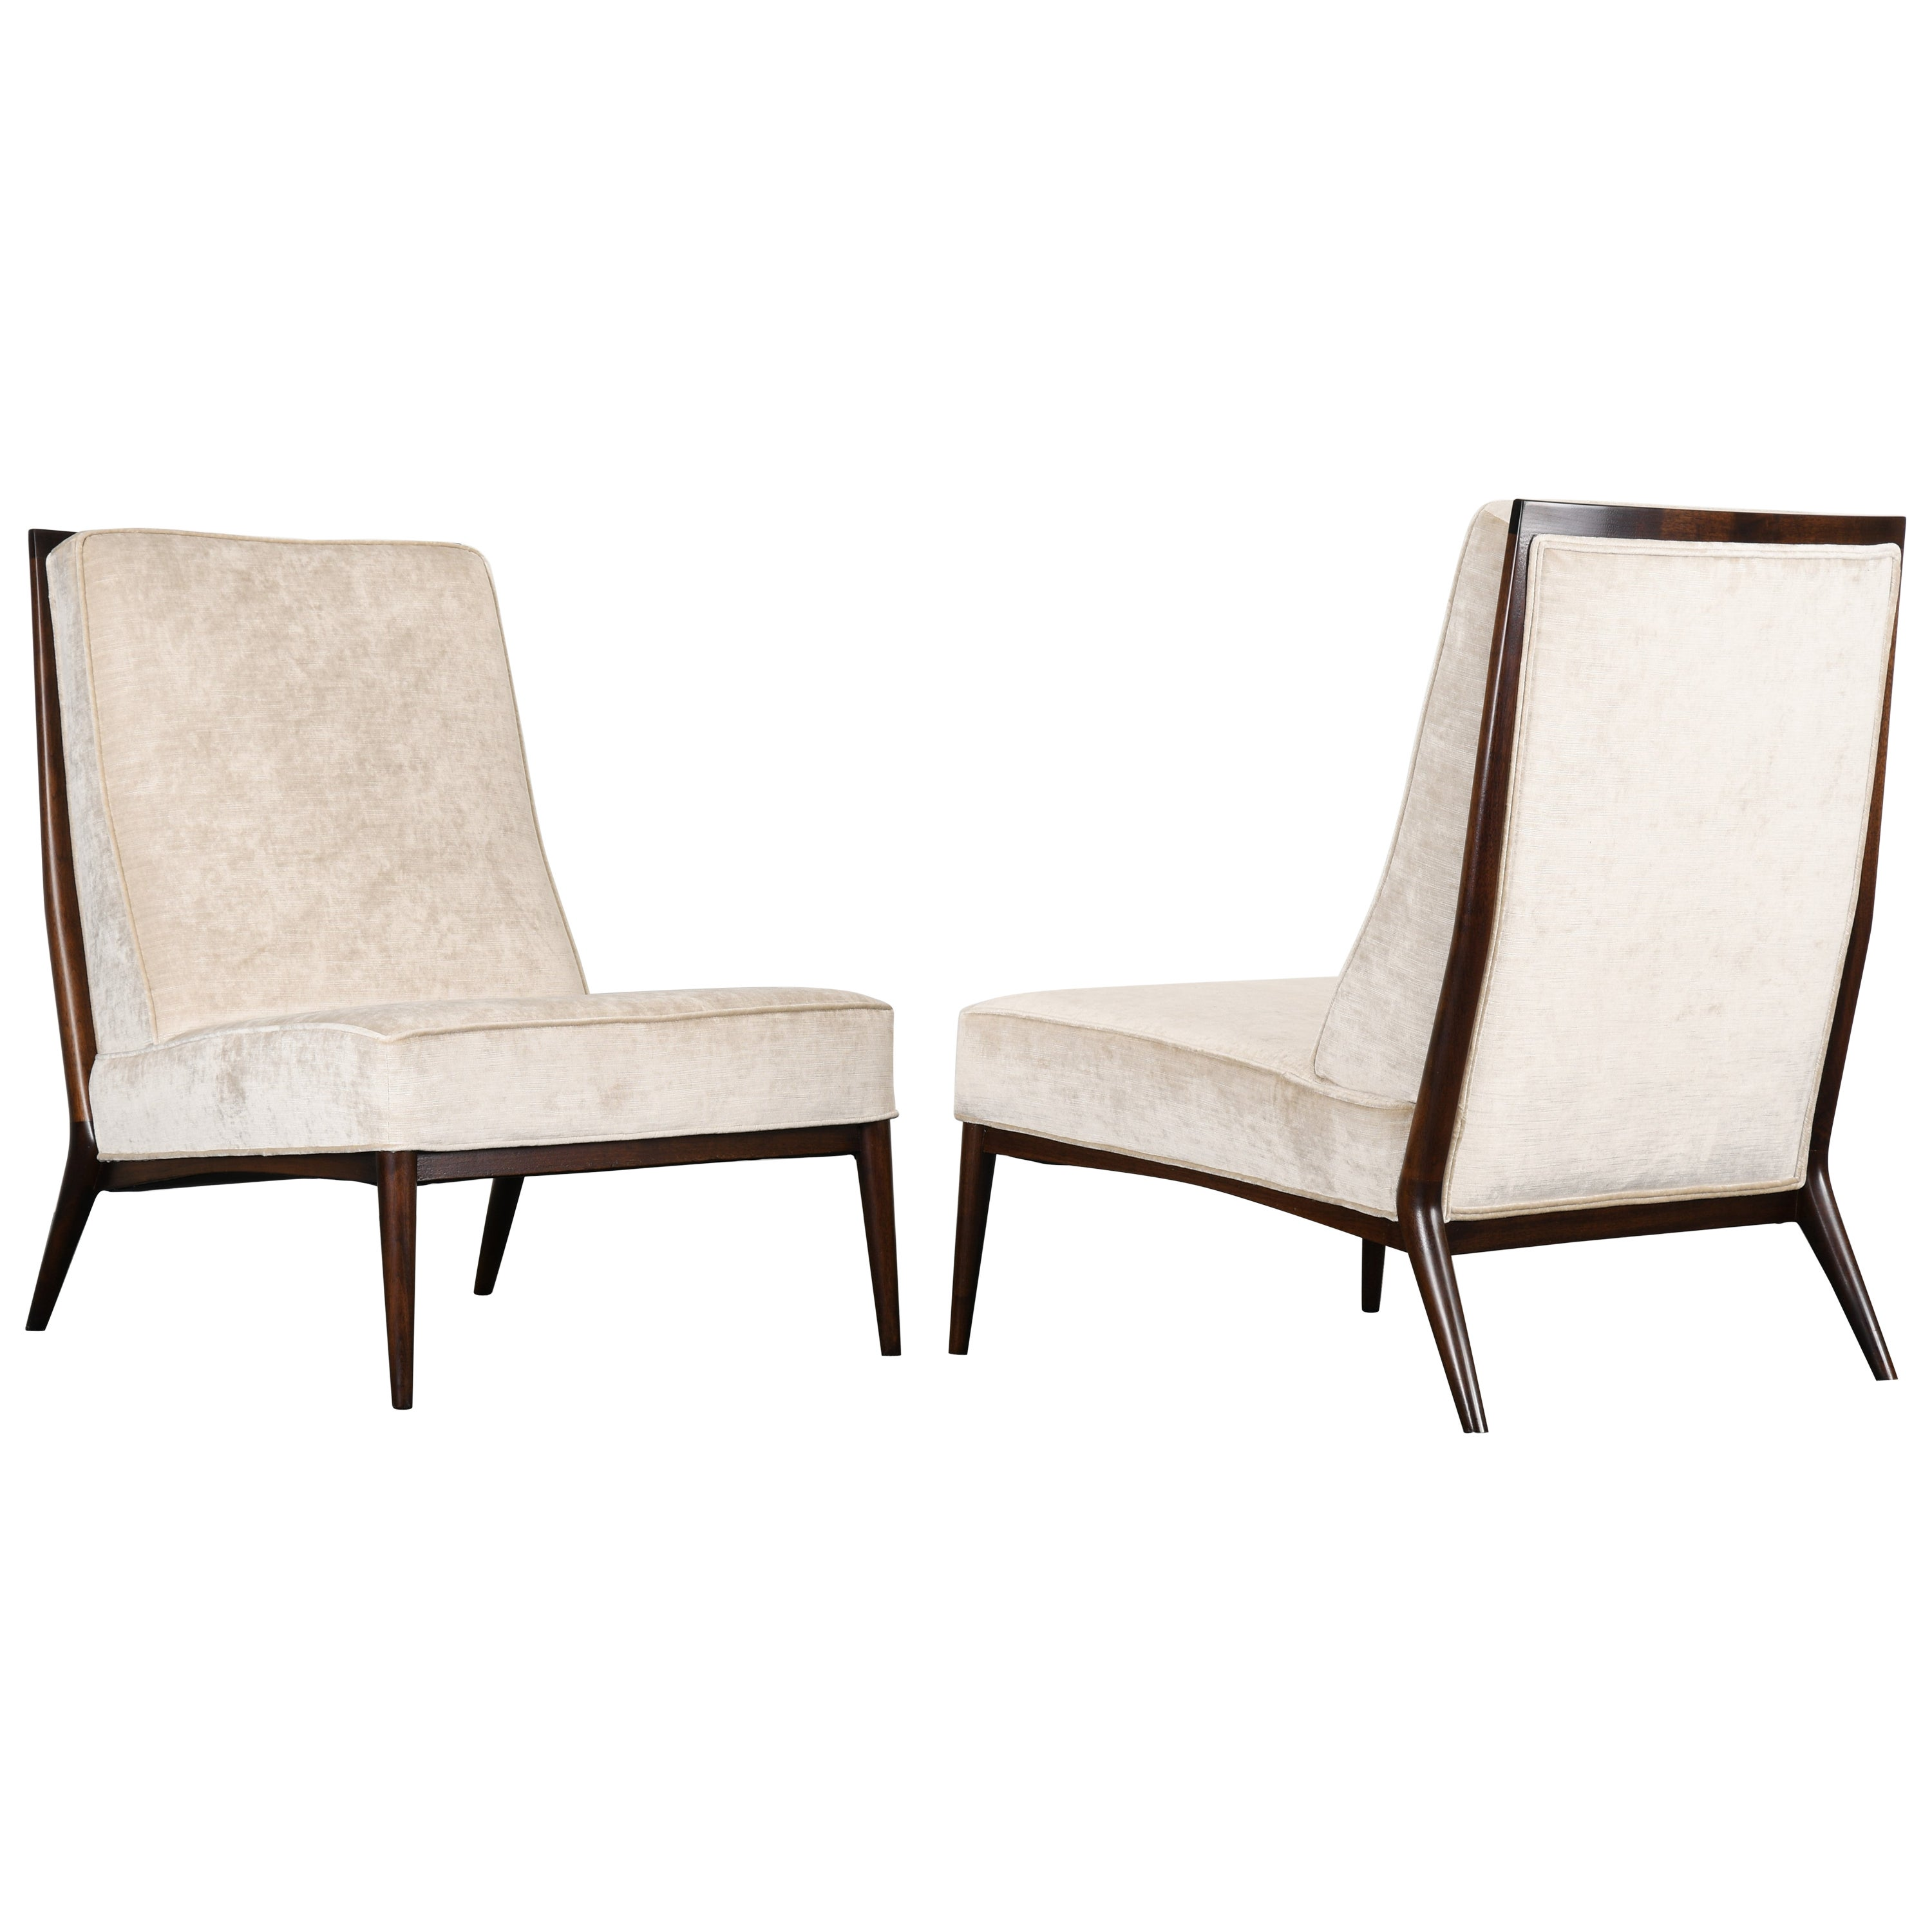 Pair of Paul McCobb Slipper Chairs for Directional, 1950s